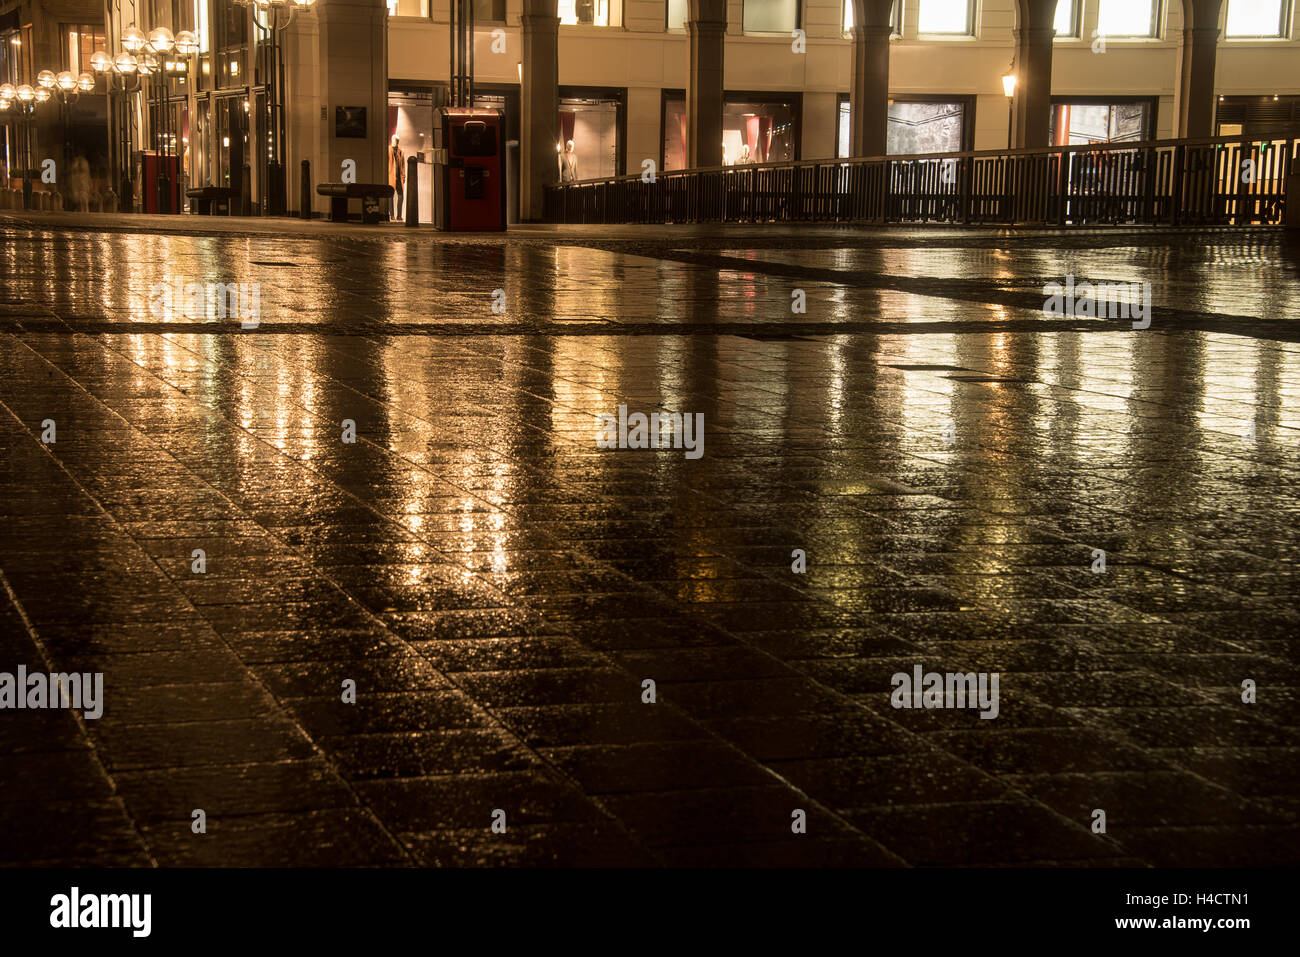 street reflection in the city at night - Stock Image